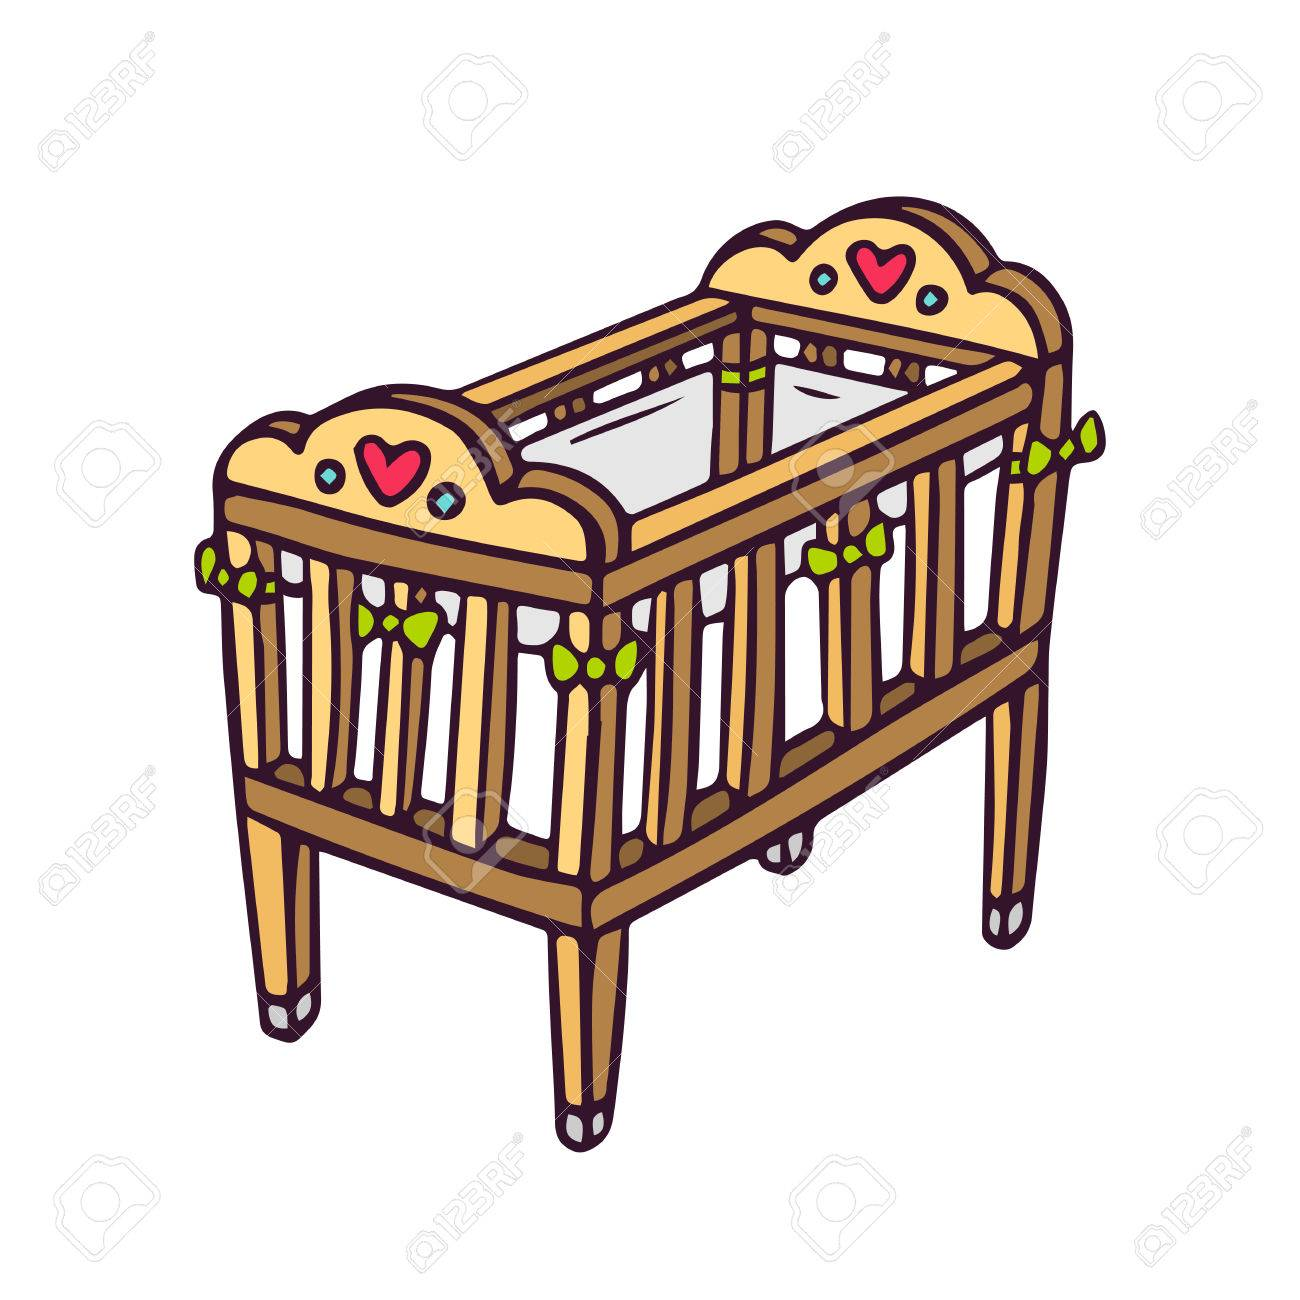 Crib baby clipart vector royalty free download Collection of 14 free Crib clipart cradle bamboo clipart sign ... vector royalty free download